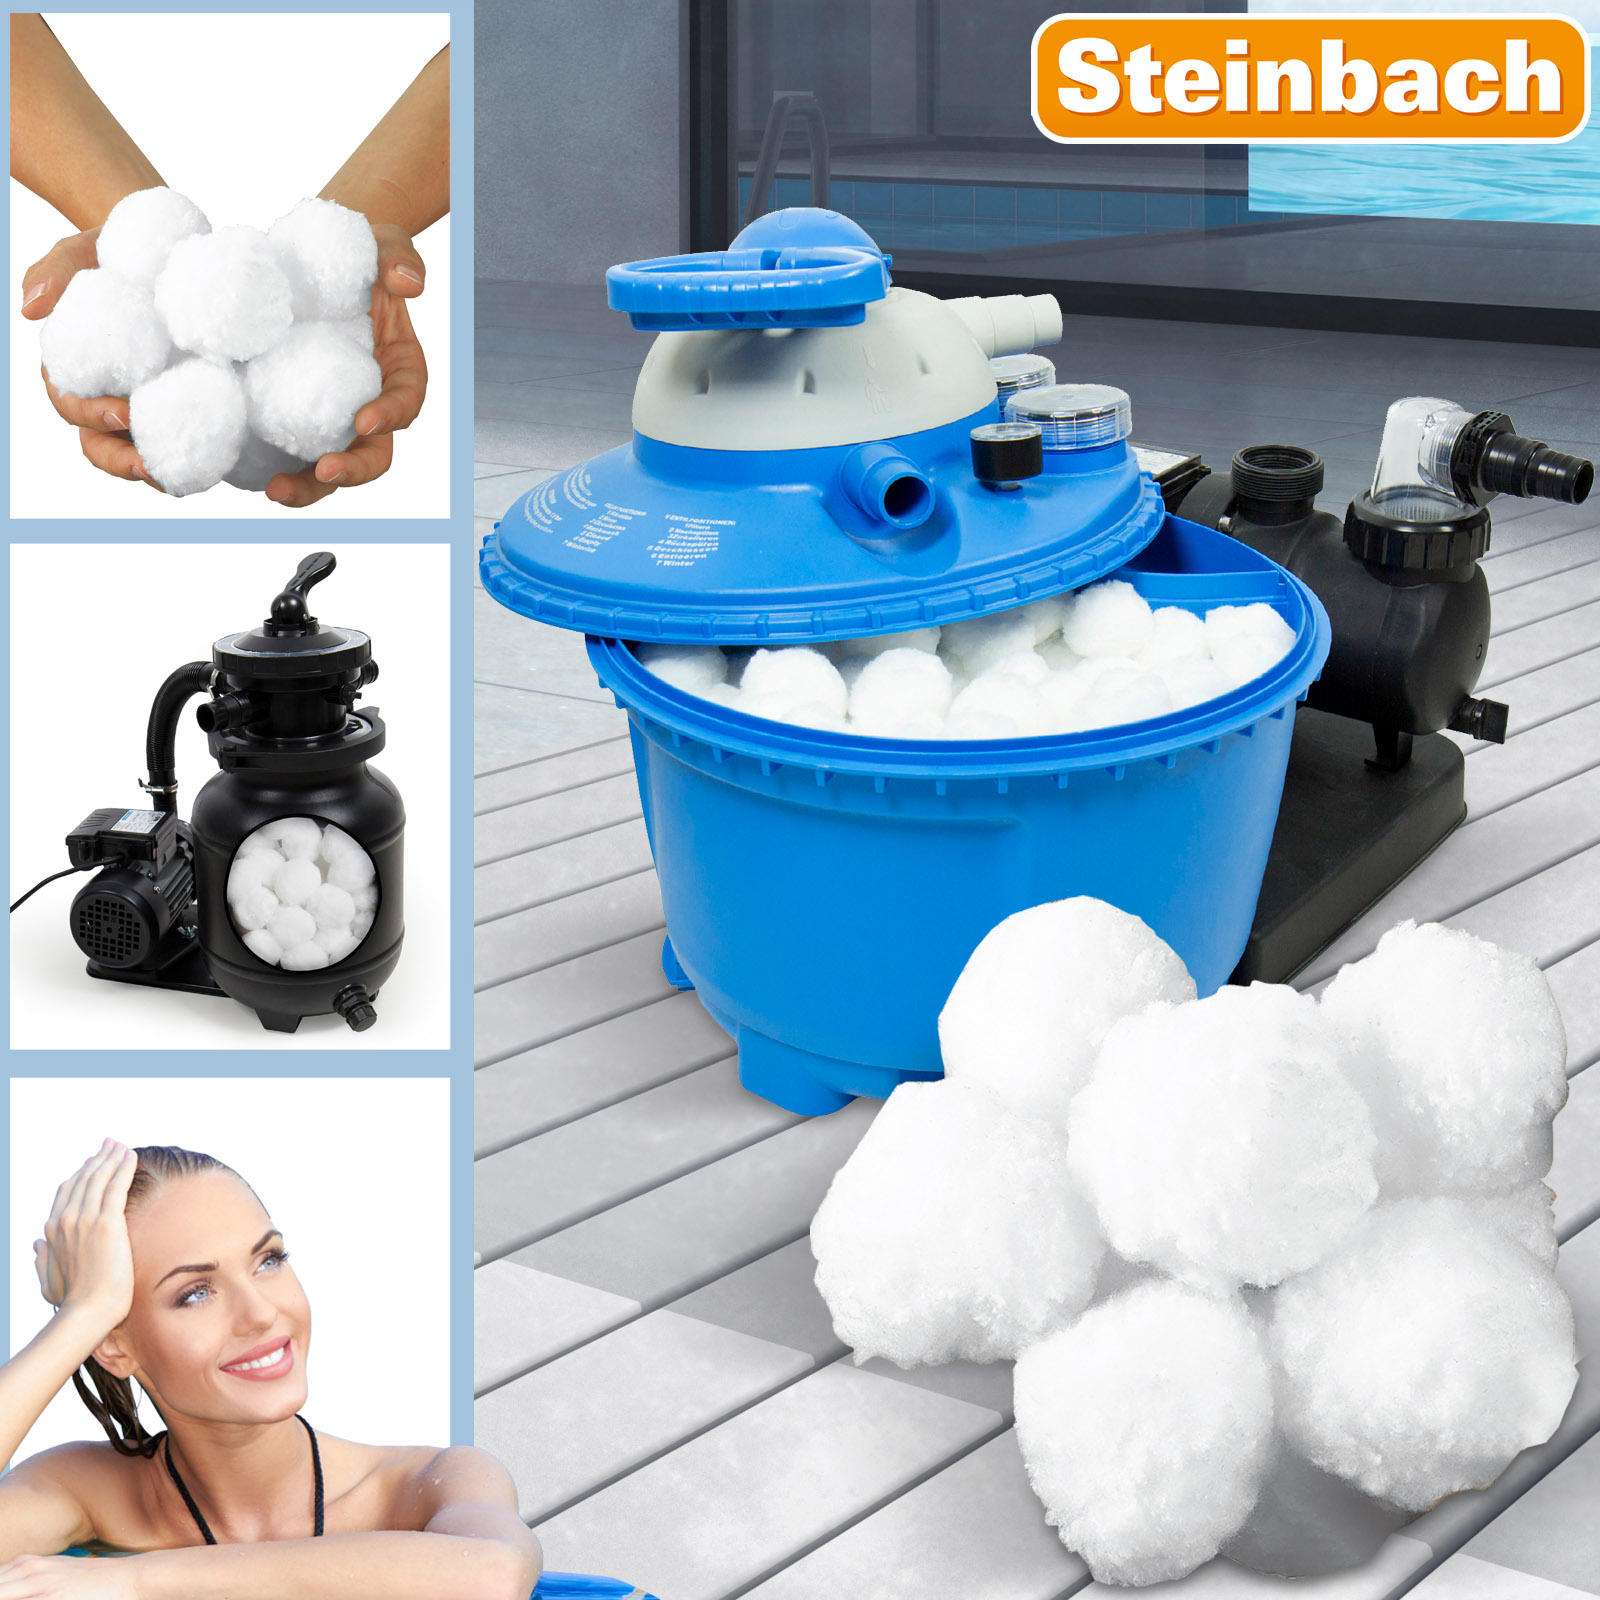 Filter balls 700g f r sandfilter alternativ zu 25 kg for Obi filtersand pool